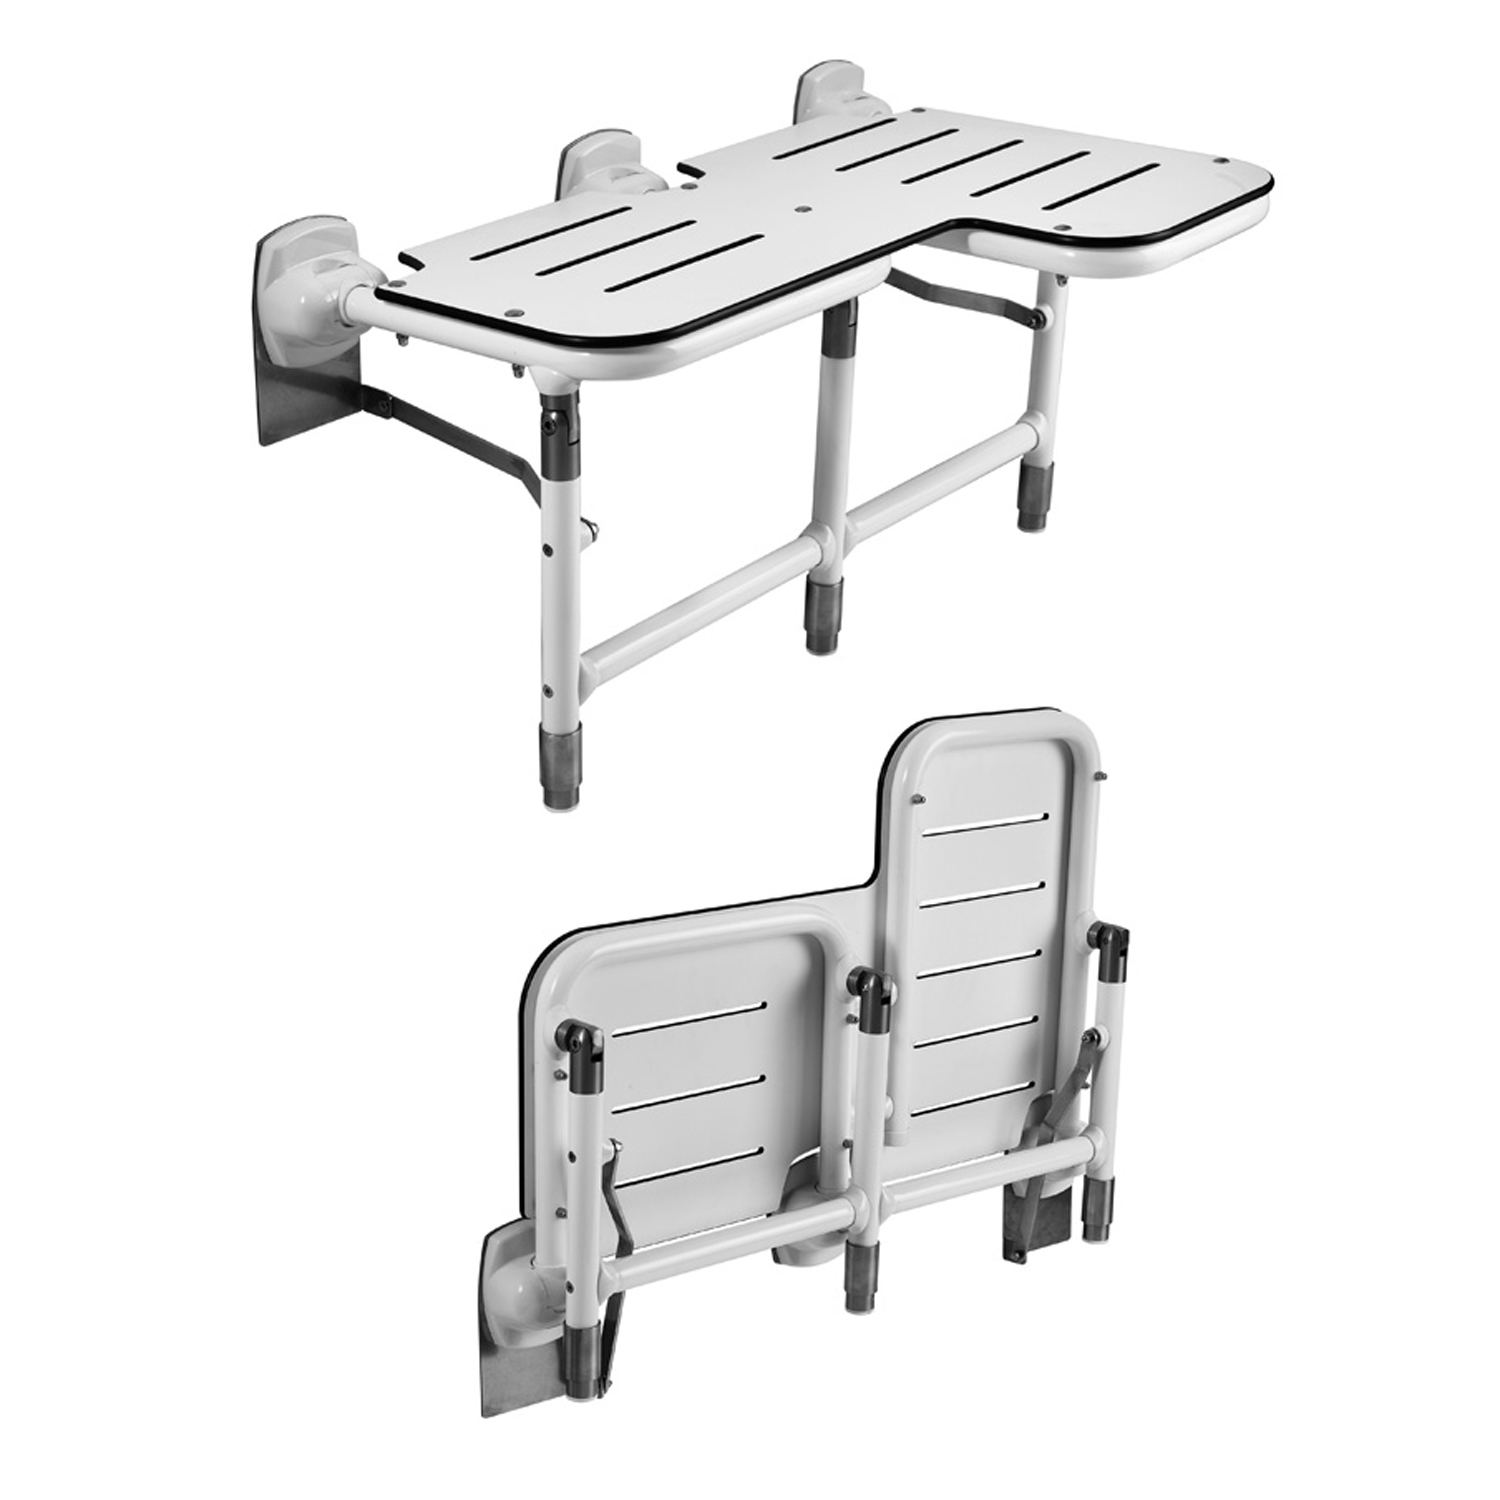 Commercial shower bariatric folding seat with legs